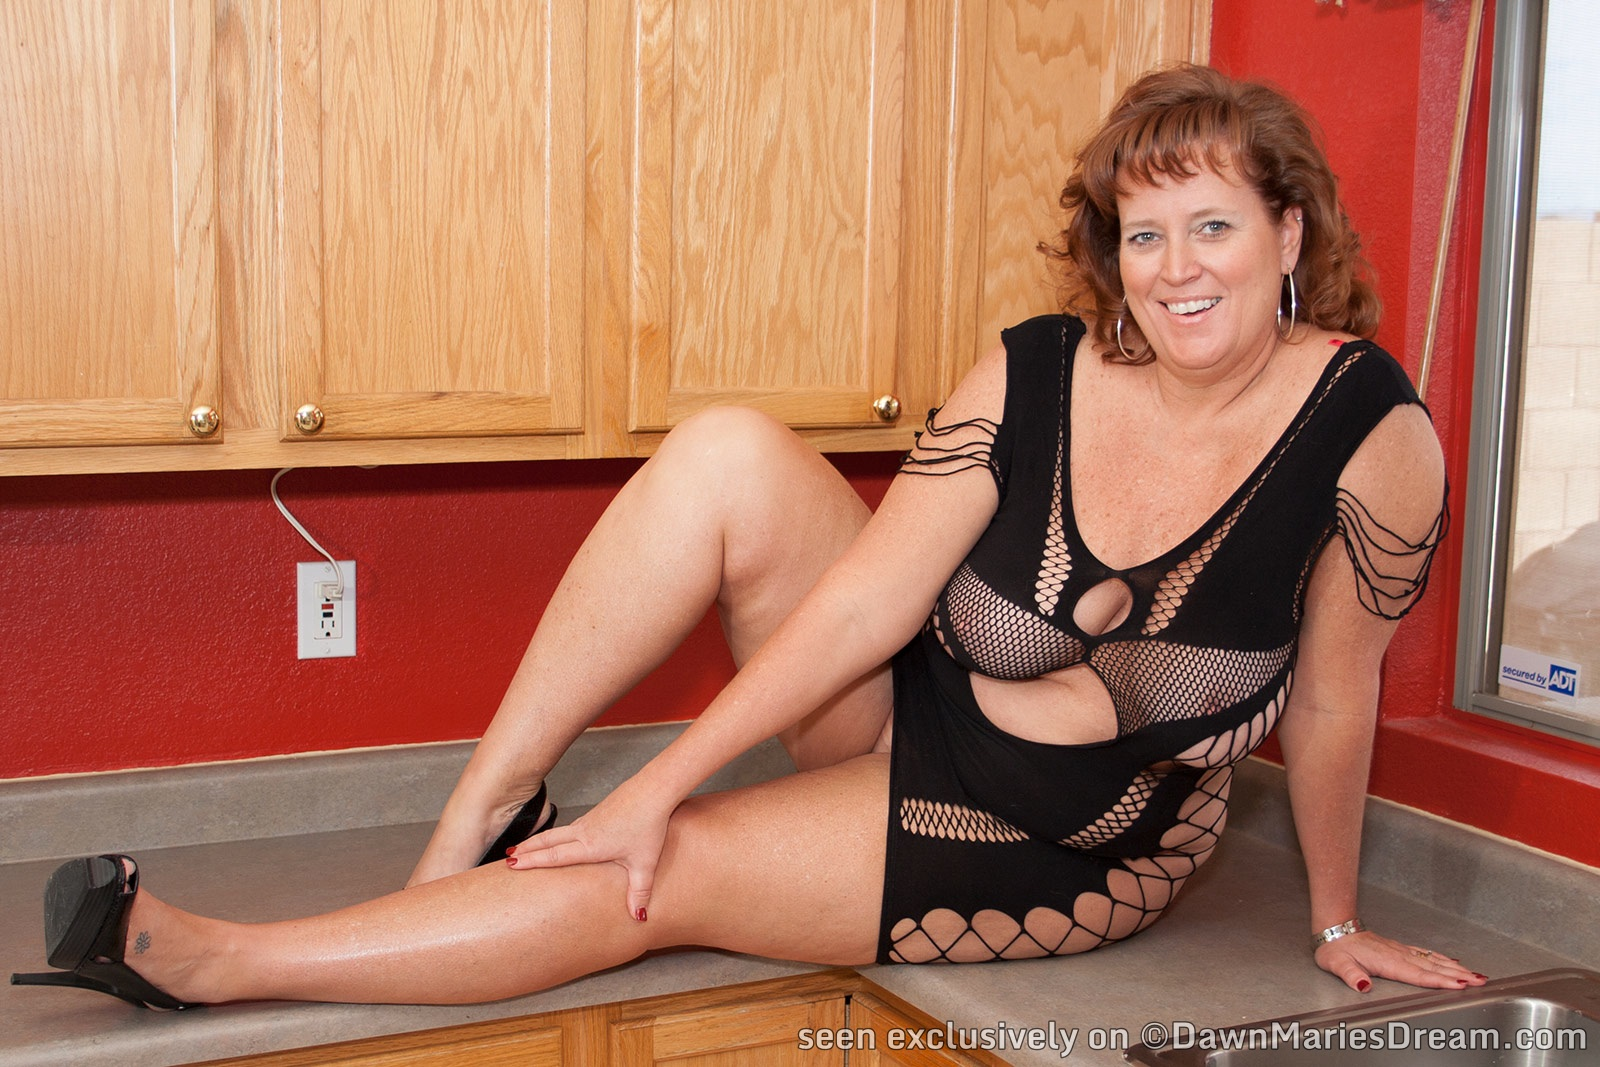 Dawn marie pantyhose join. agree